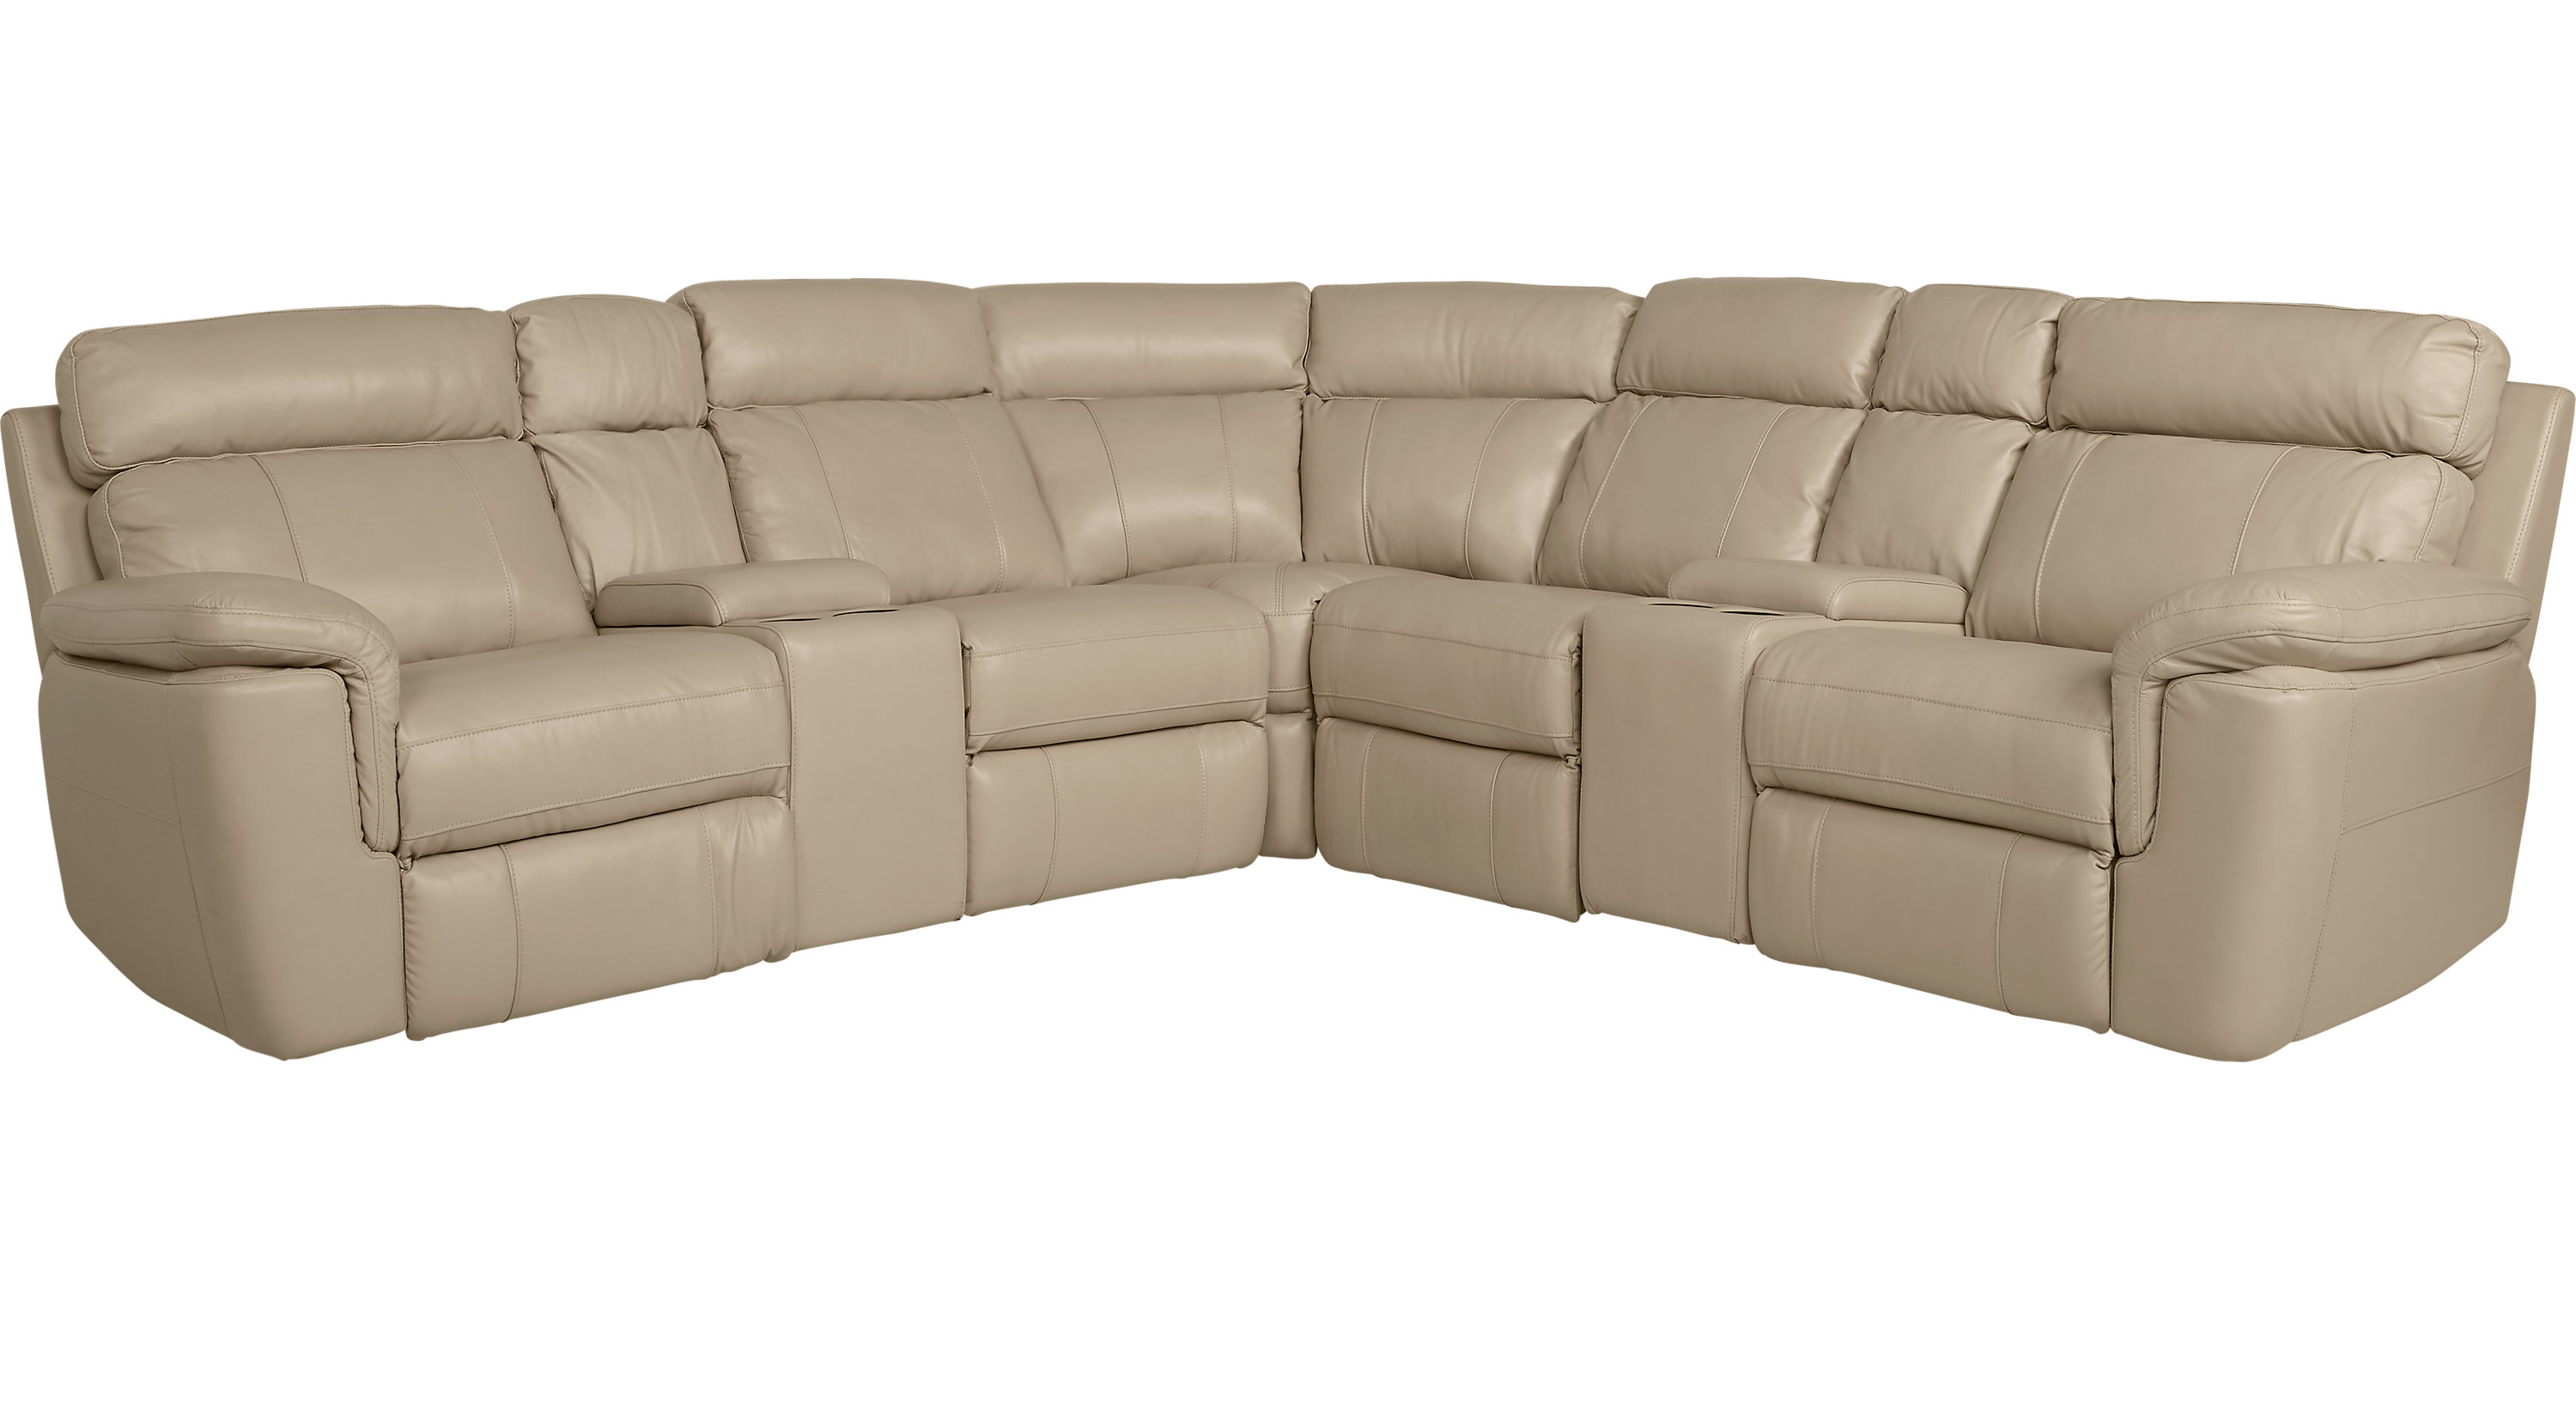 Hudson Square Sand Leather 7 Pc Reclining Sectional